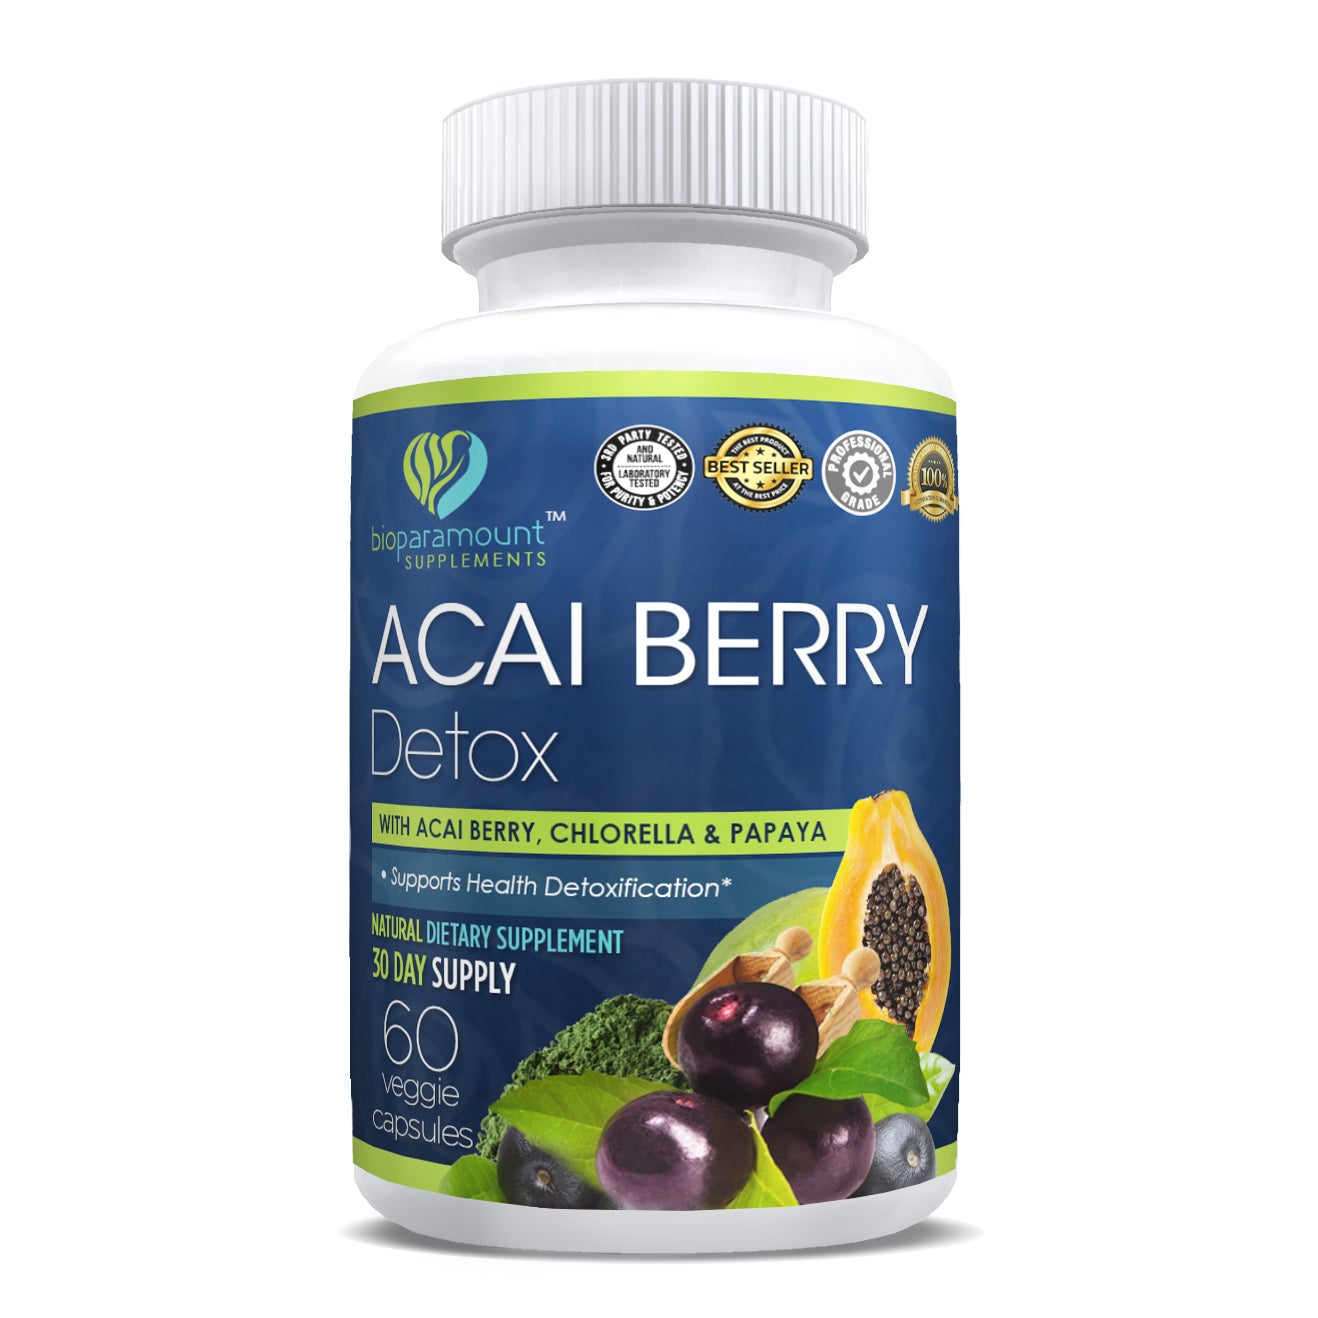 f9e08af6acfe7 Shop Bio Paramount Acai Berry Detox (60 Vegetarian Capsules) - Free  Shipping On Orders Over  45 - Overstock.com - 20698118